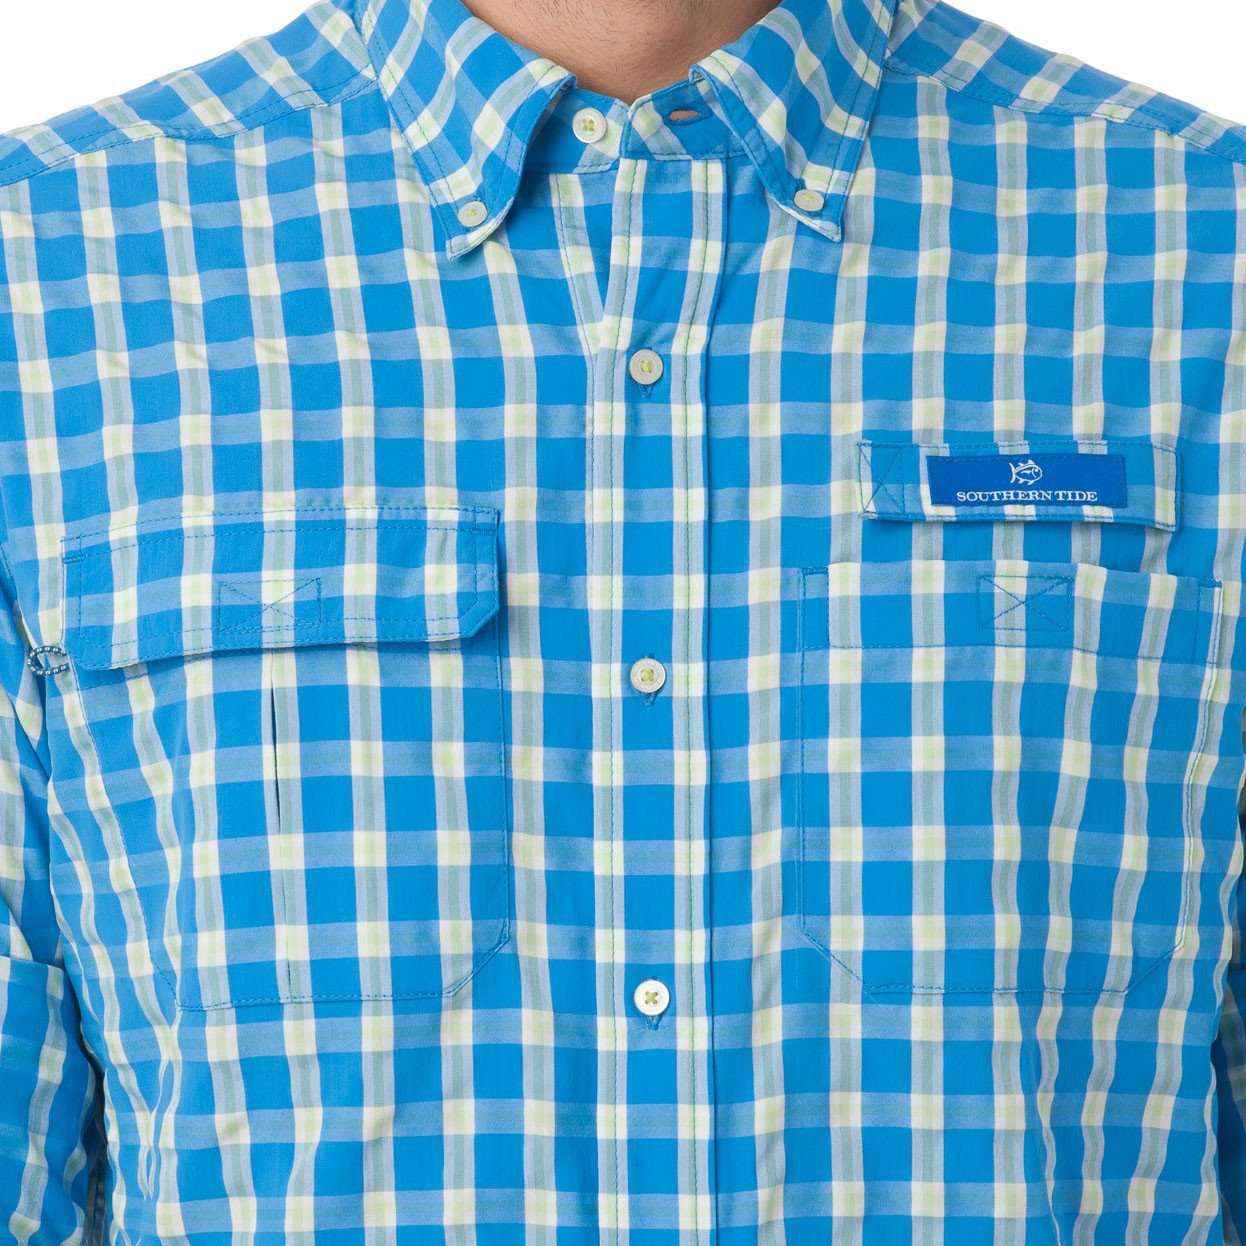 Sailfish Plaid Fishing Shirt in Blue Stream by Southern Tide  - 6